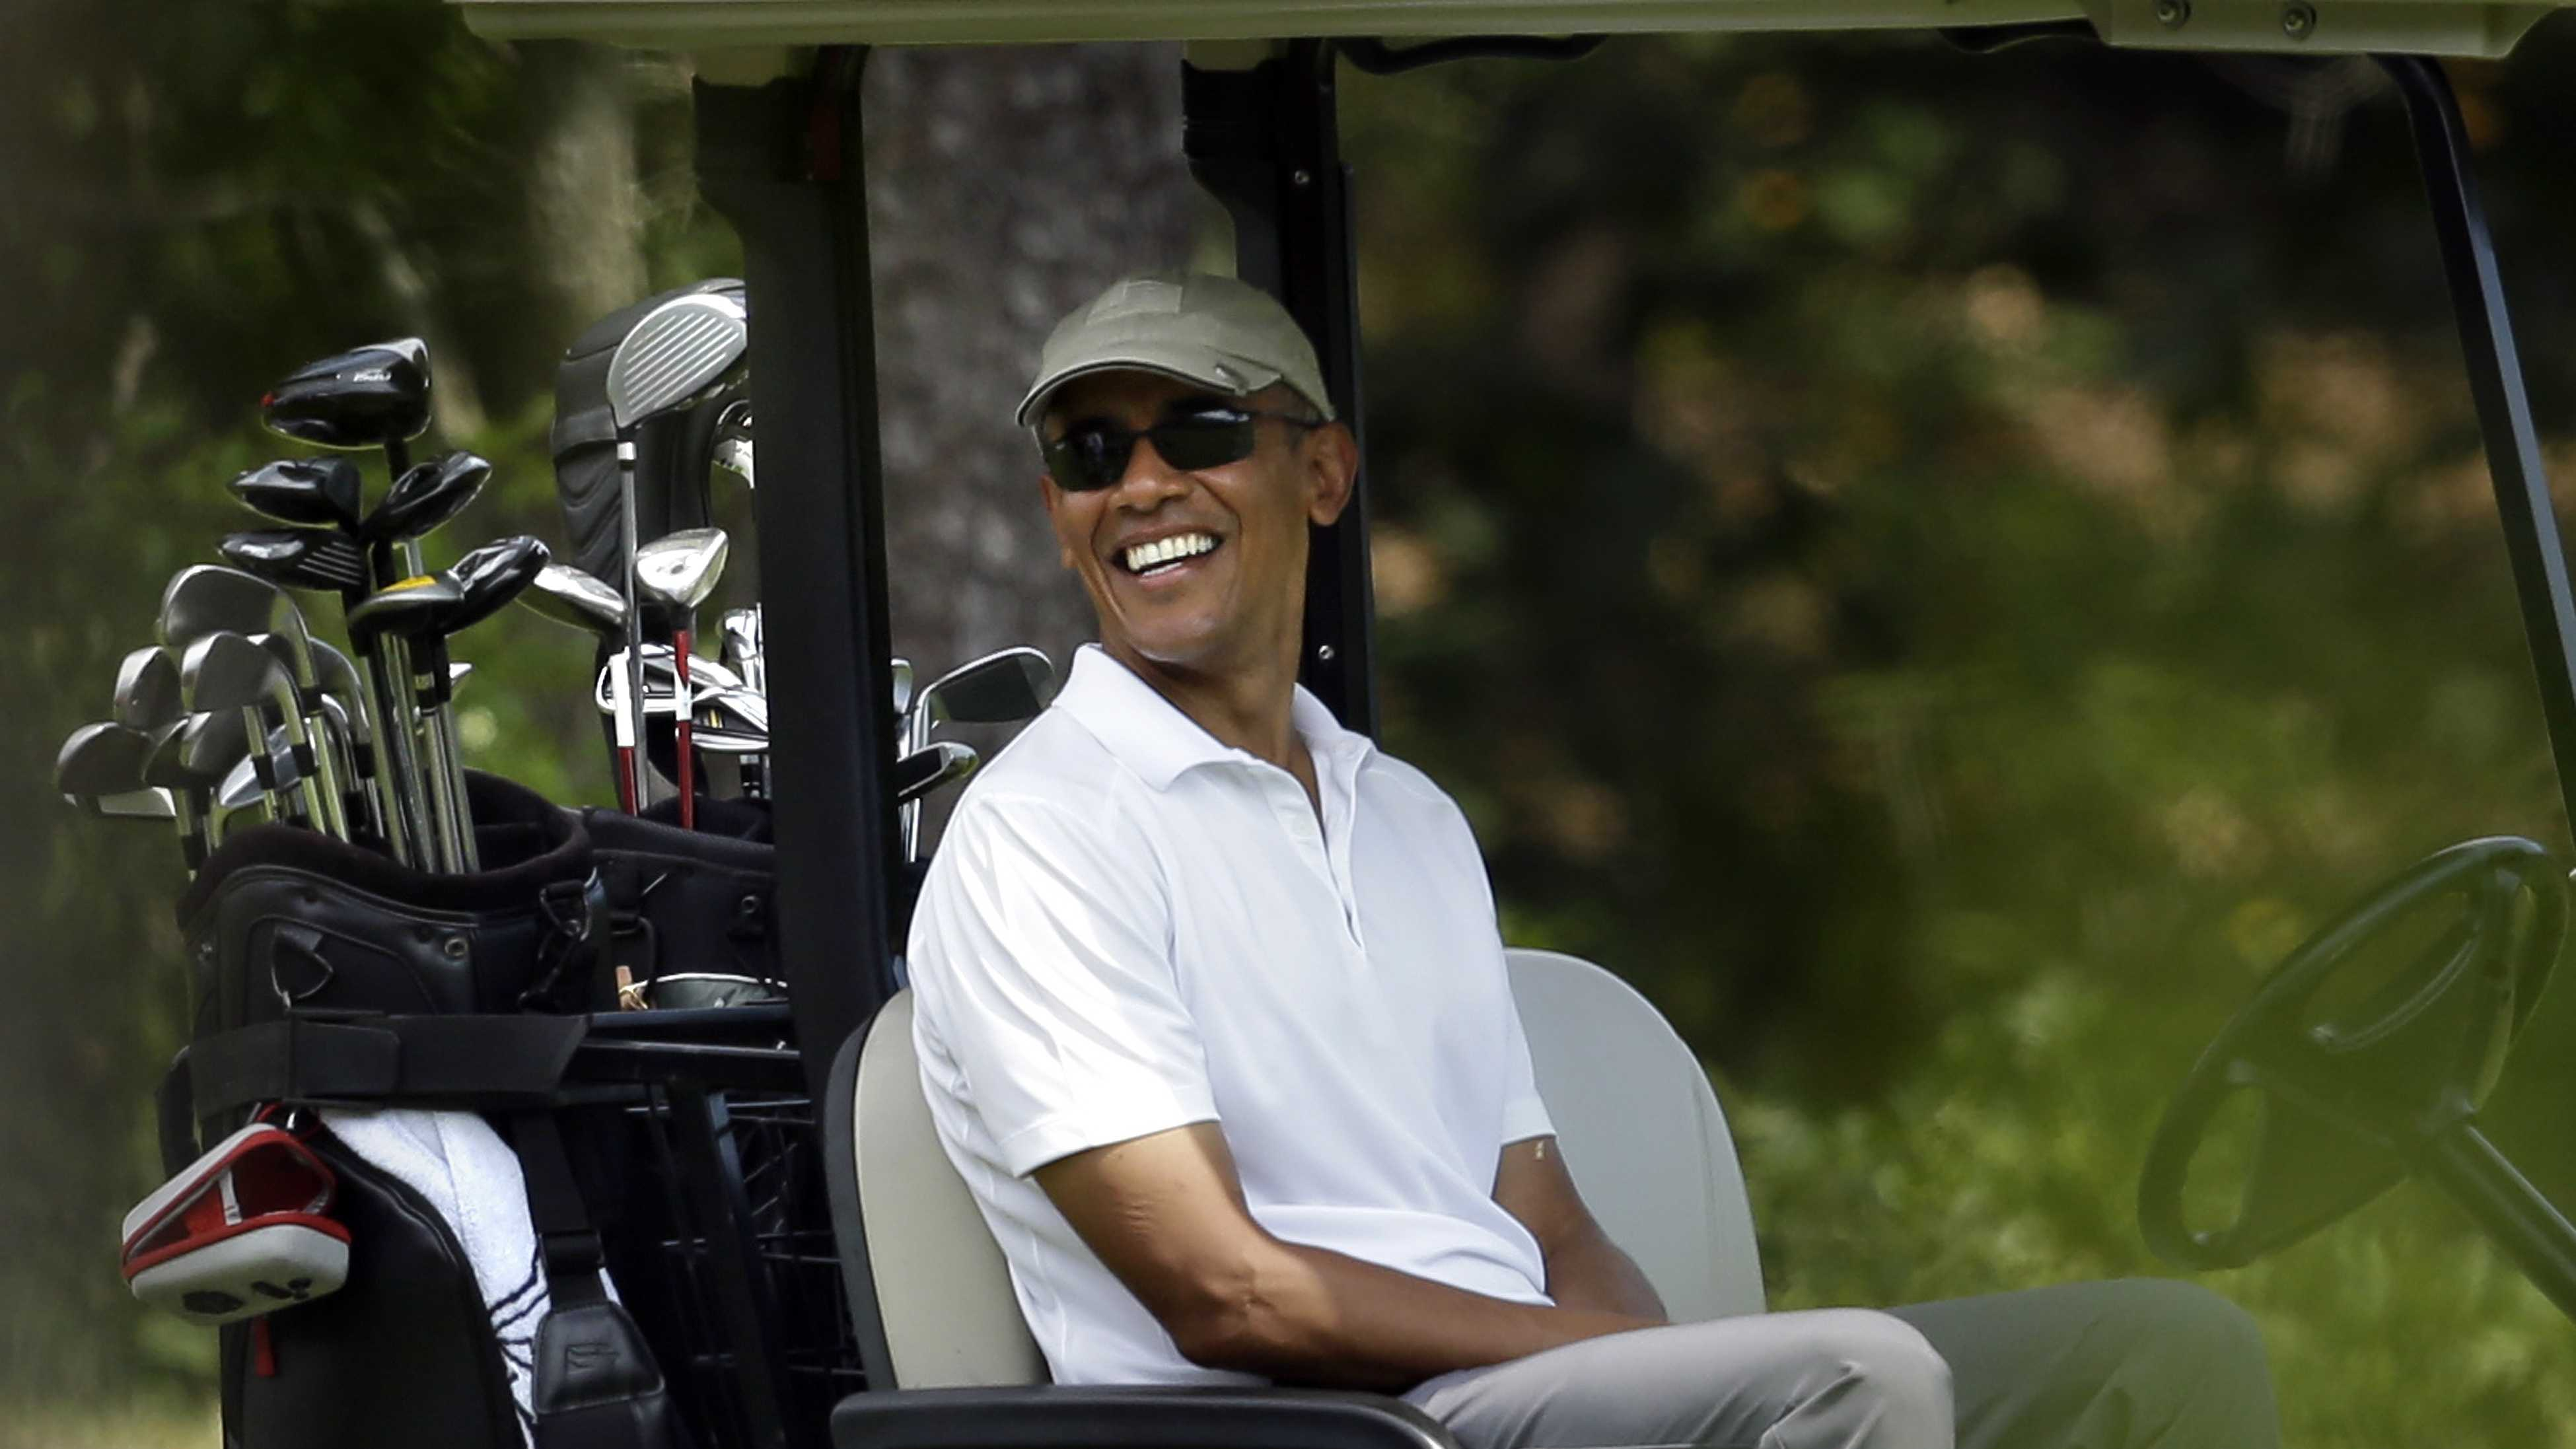 President Barack Obama smiles as he sits in a cart while golfing Saturday, Aug. 15, 2015, at Farm Neck Golf Club, in Oak Bluffs, Mass., on the island of Martha's Vineyard.